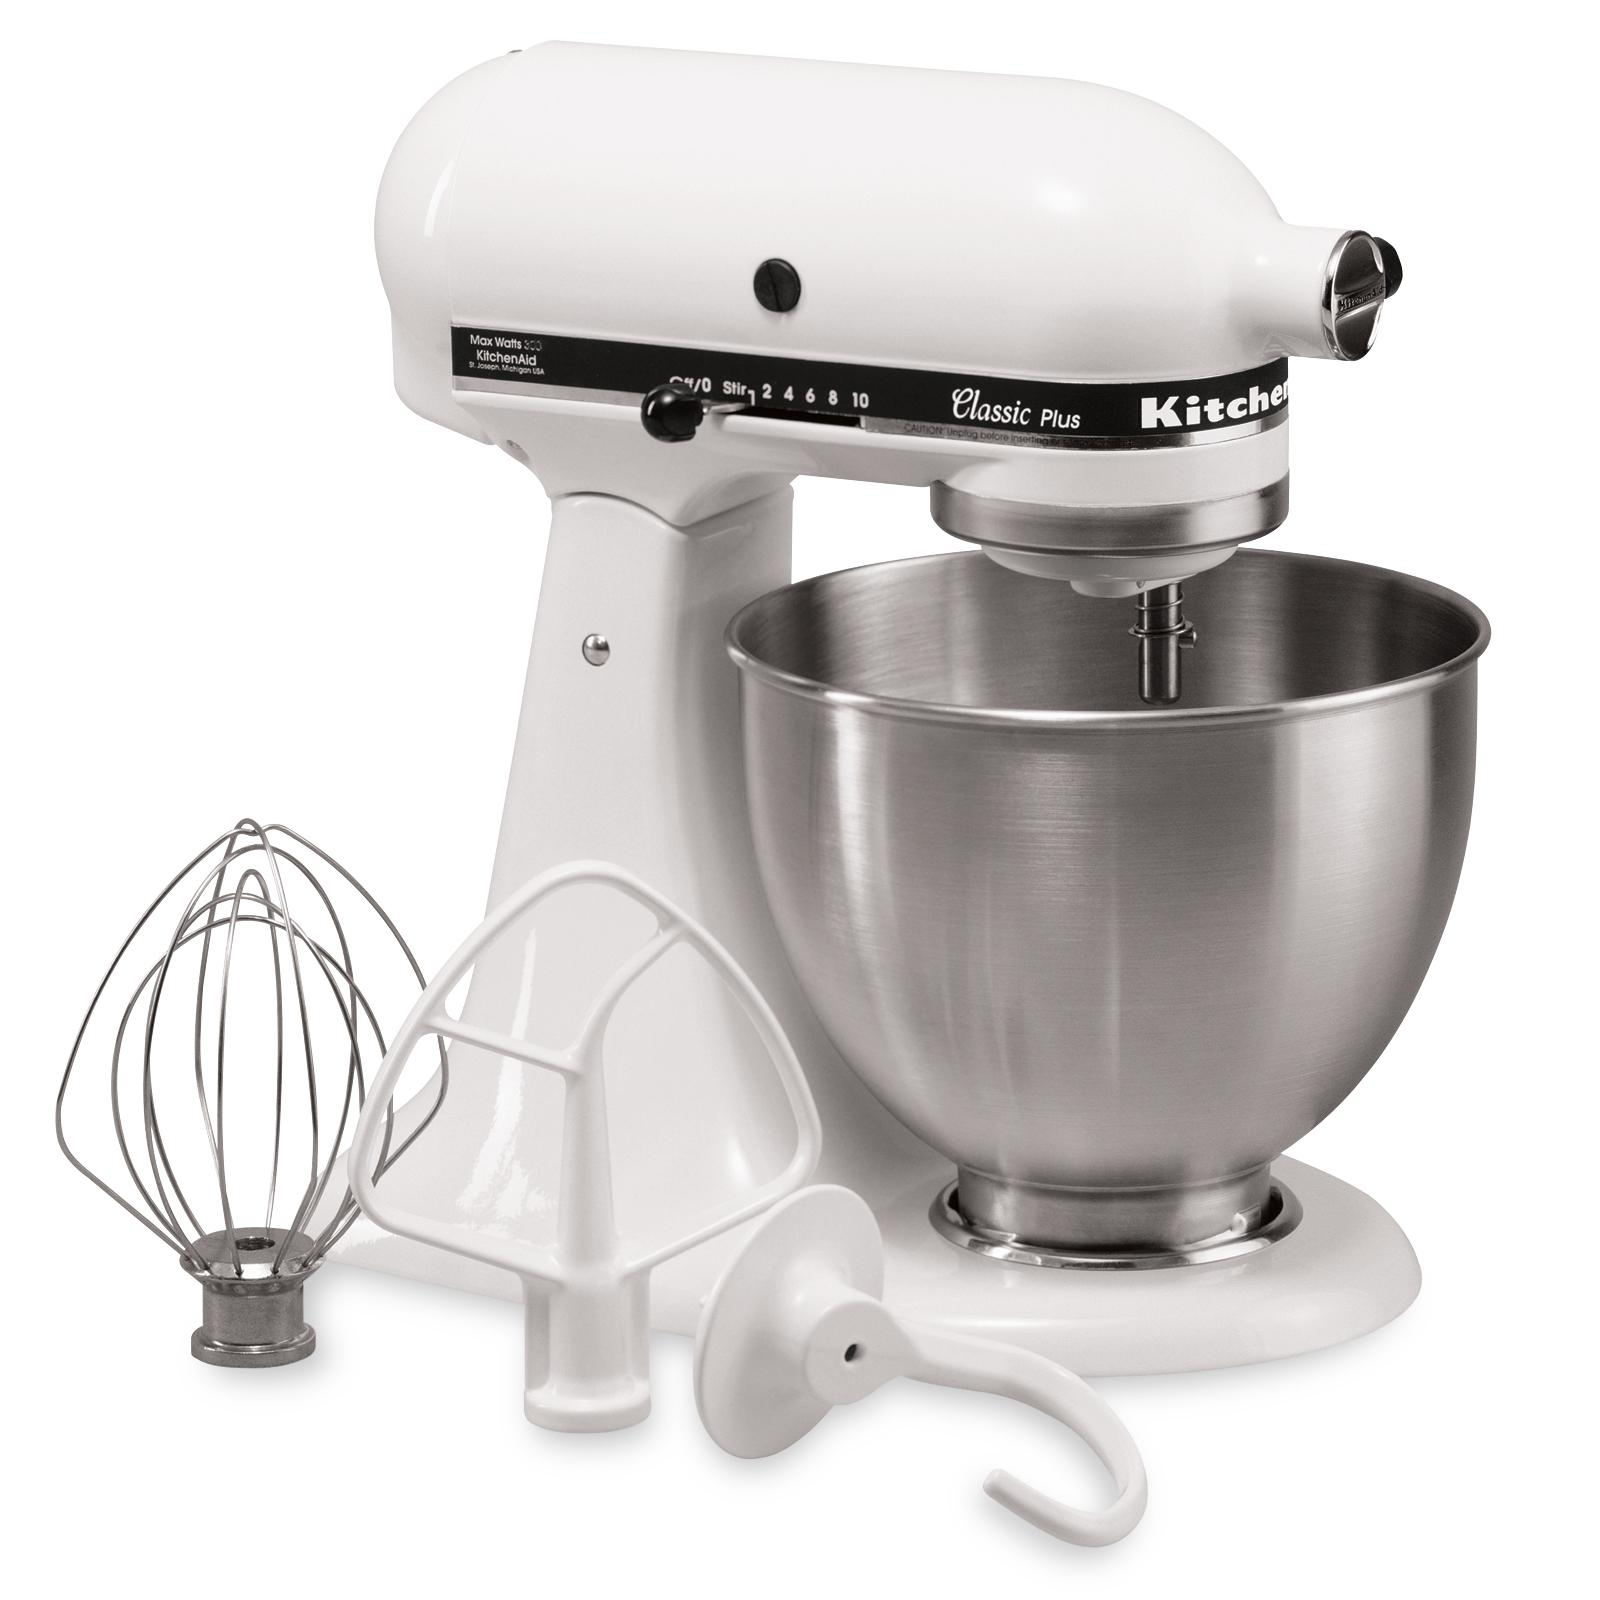 kitchenaid ksm75wh classic plus series 4 5 quart tilt head stand mixer